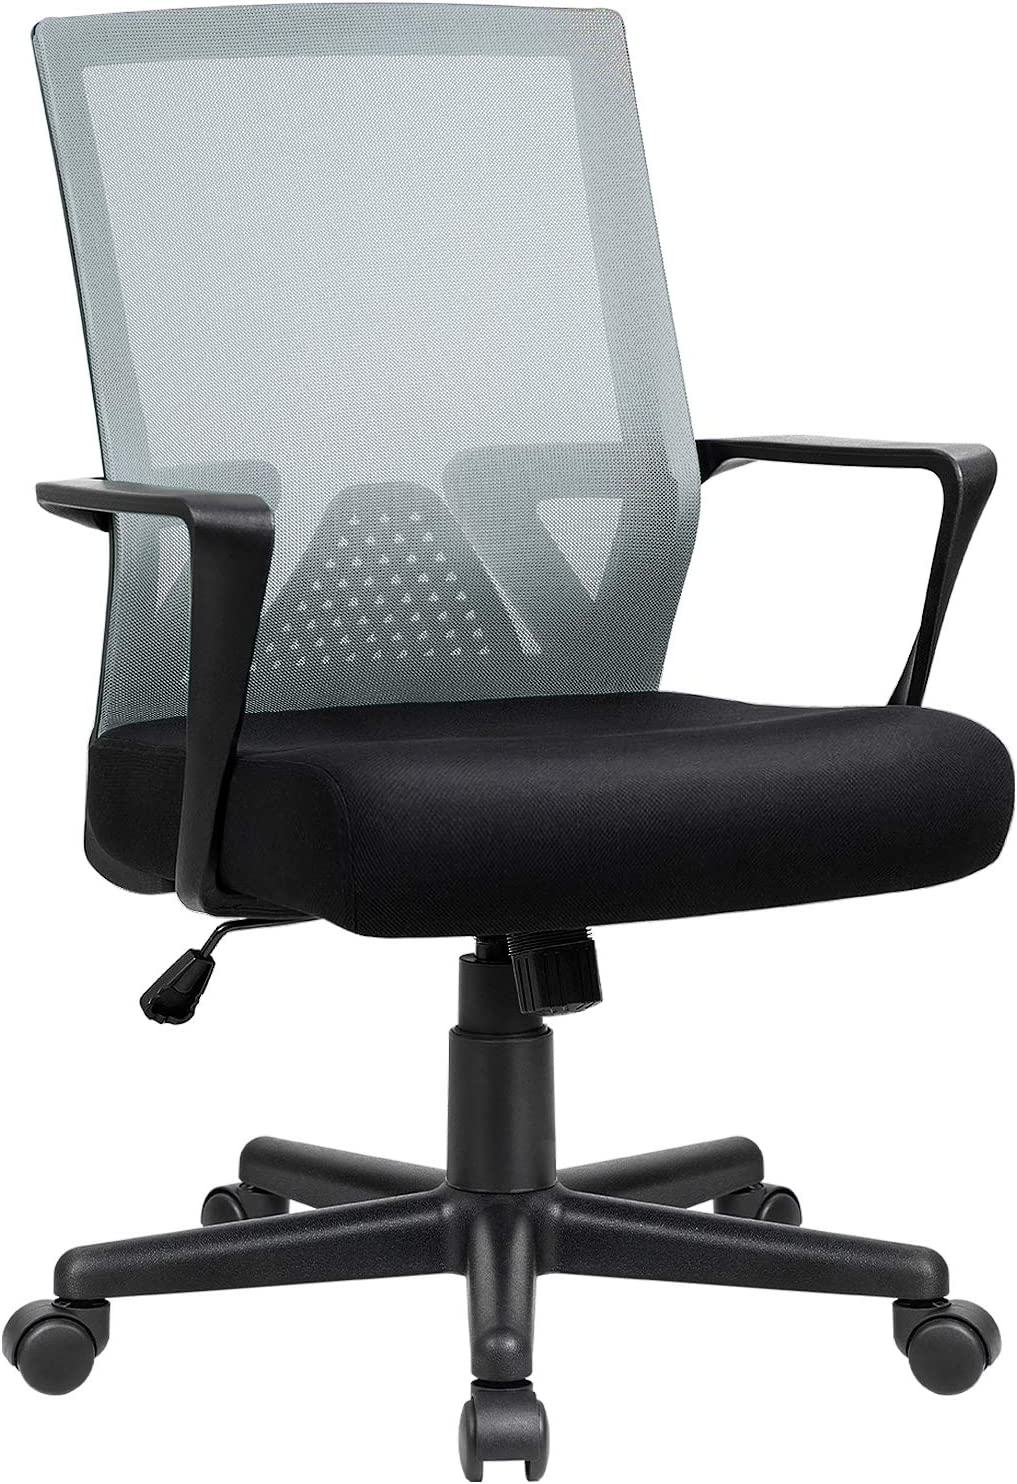 Furniwell Office Chair Ergonomic Desk Chair Mid Back Modern Computer Chair Task Swivel Chair Mesh Adjustable Chair with Lumbar Support Armrest (Grey)